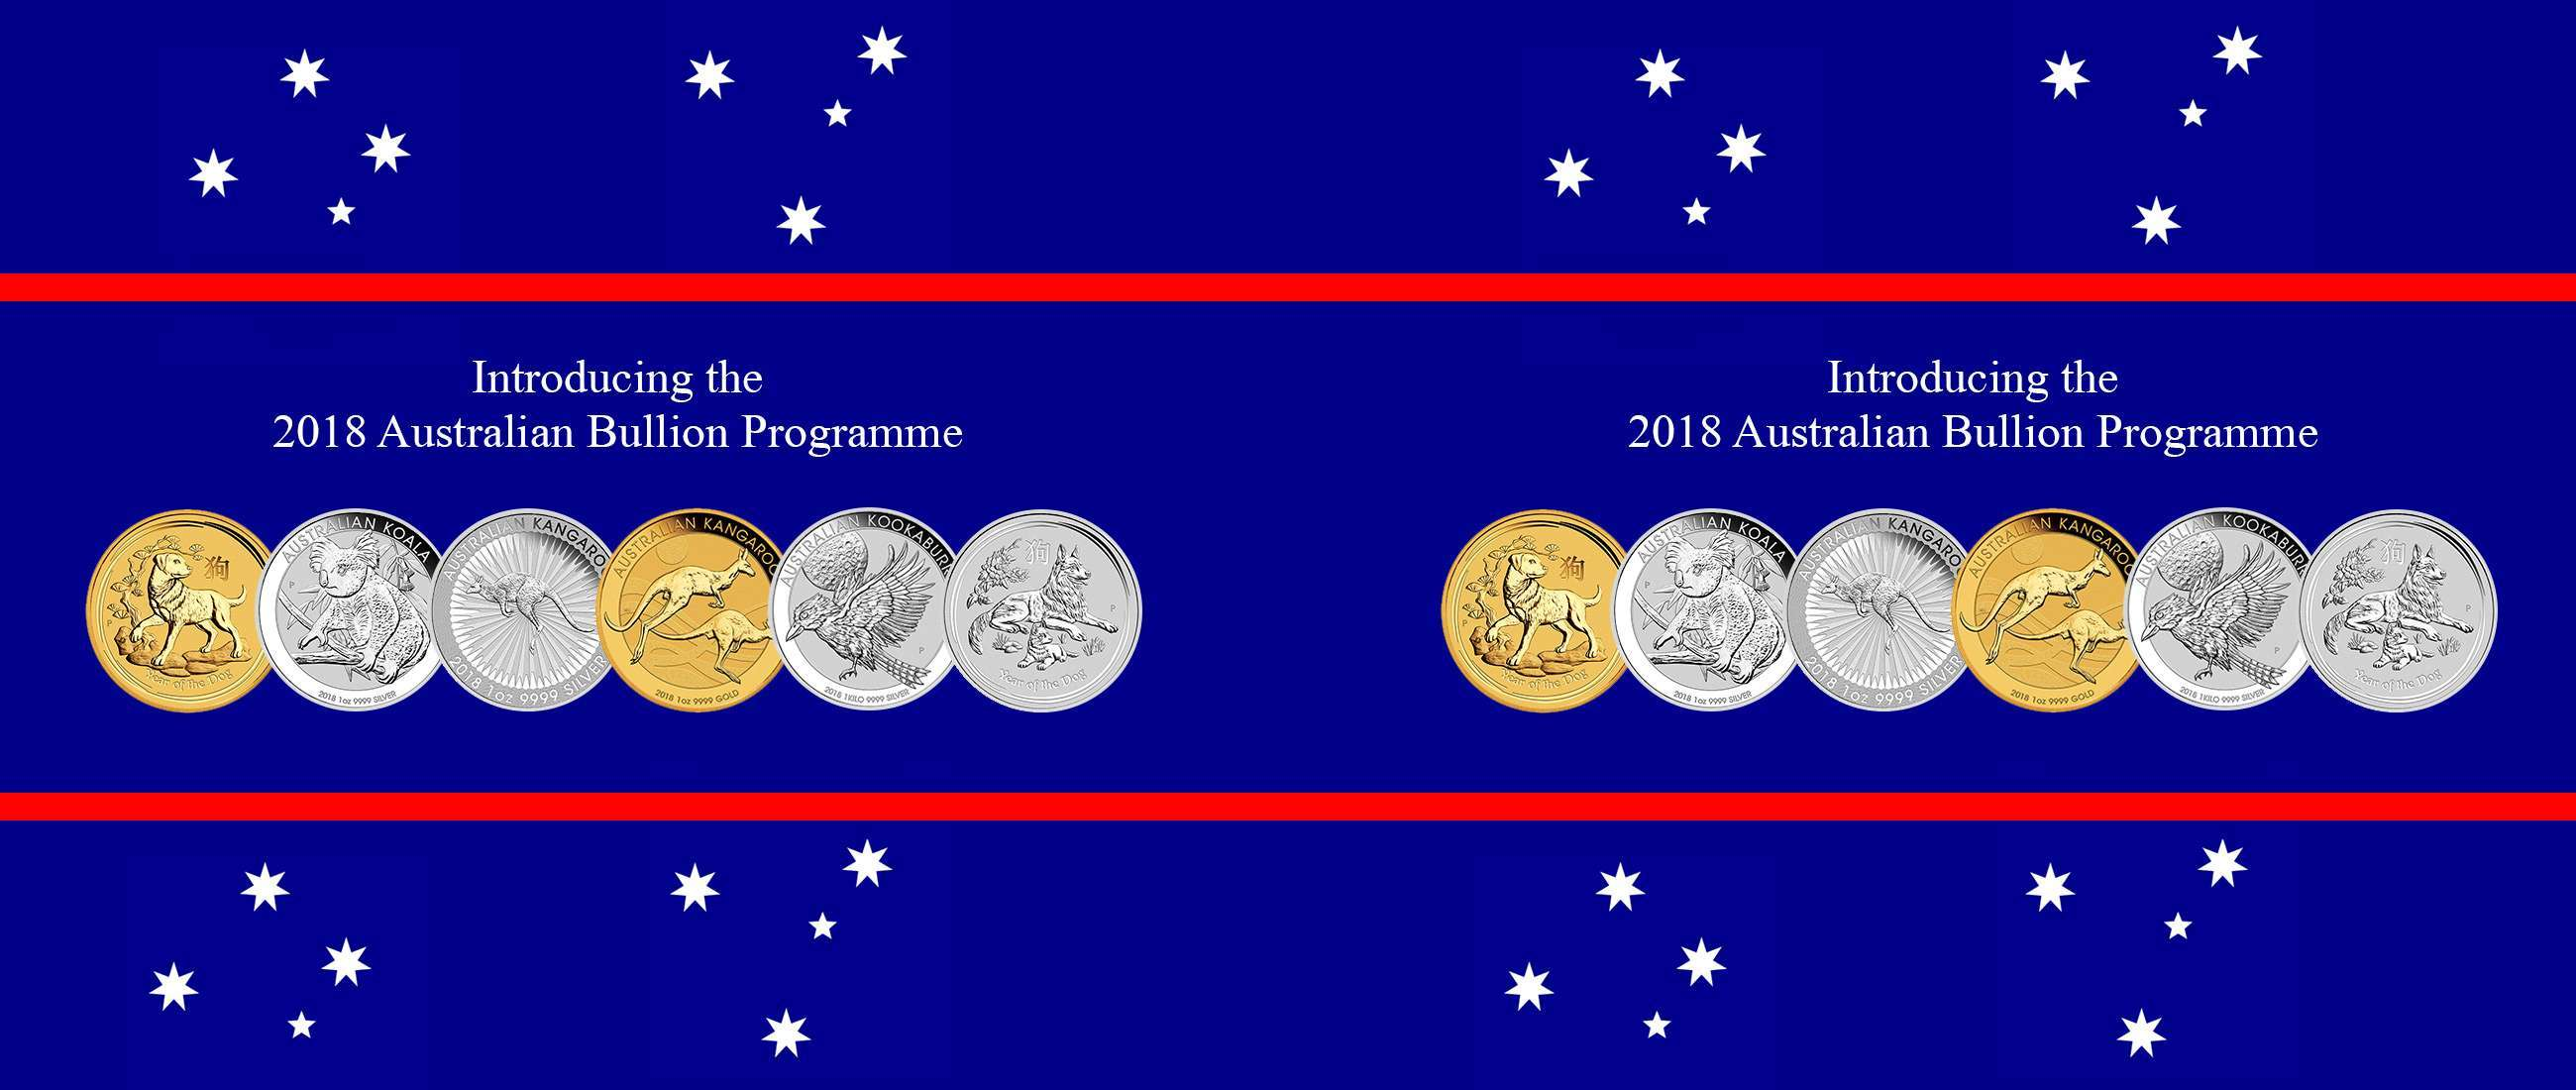 Introducing the 2018 Australian Bullion Programme 138